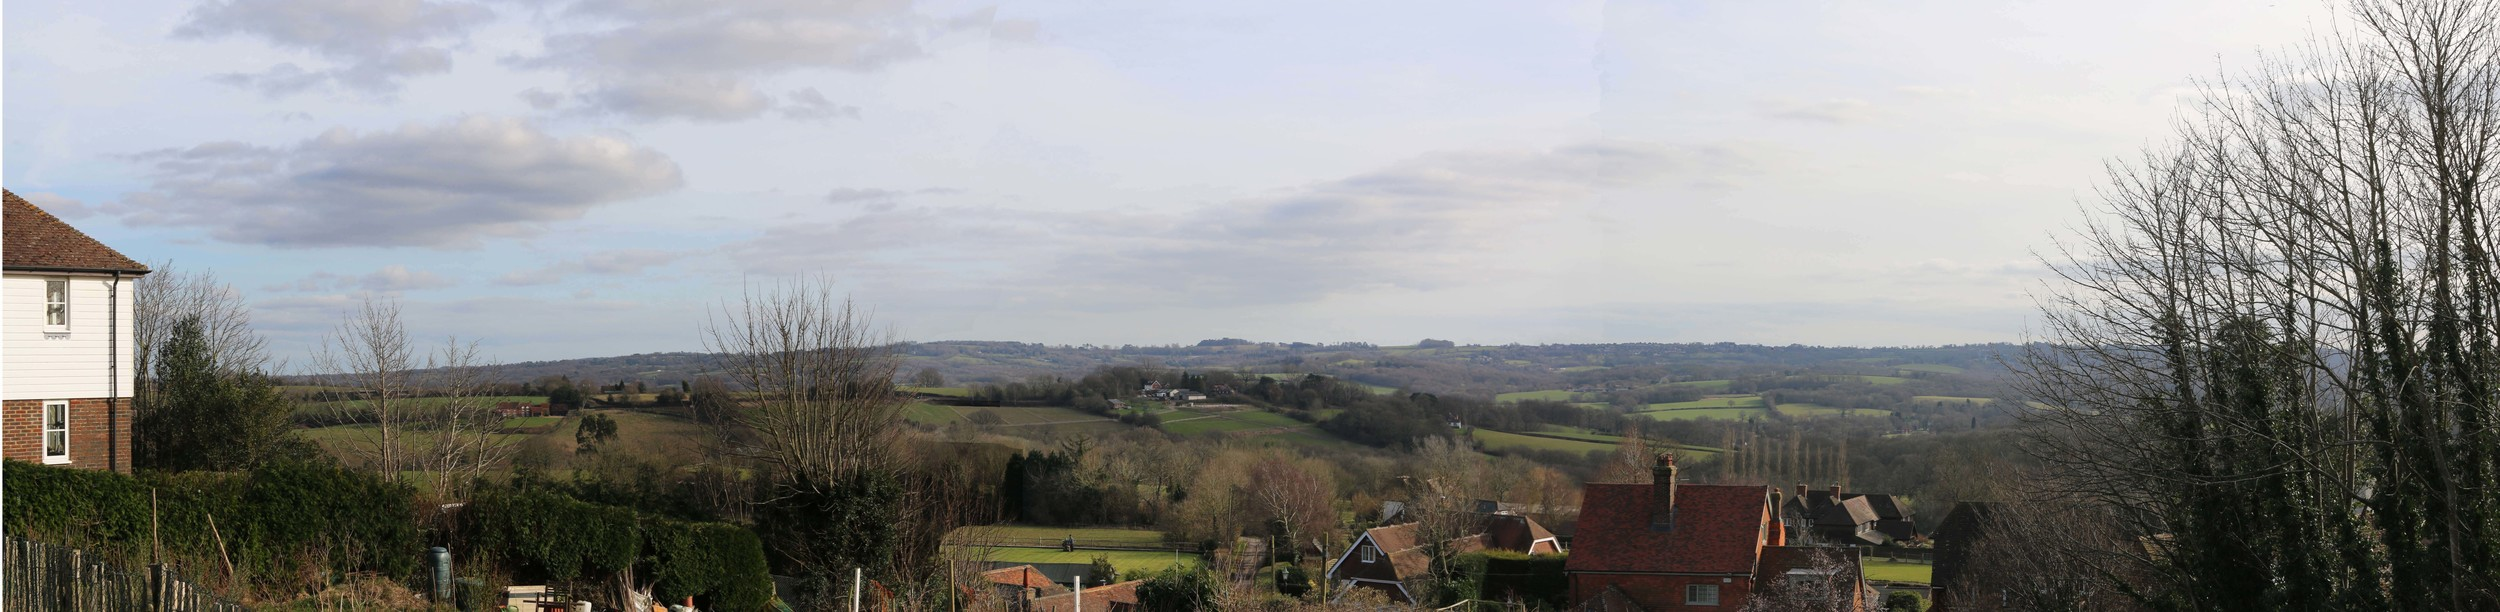 The High Weald Area of Outstanding Natural Beauty, one of the best surviving medieval landscapes in Europe